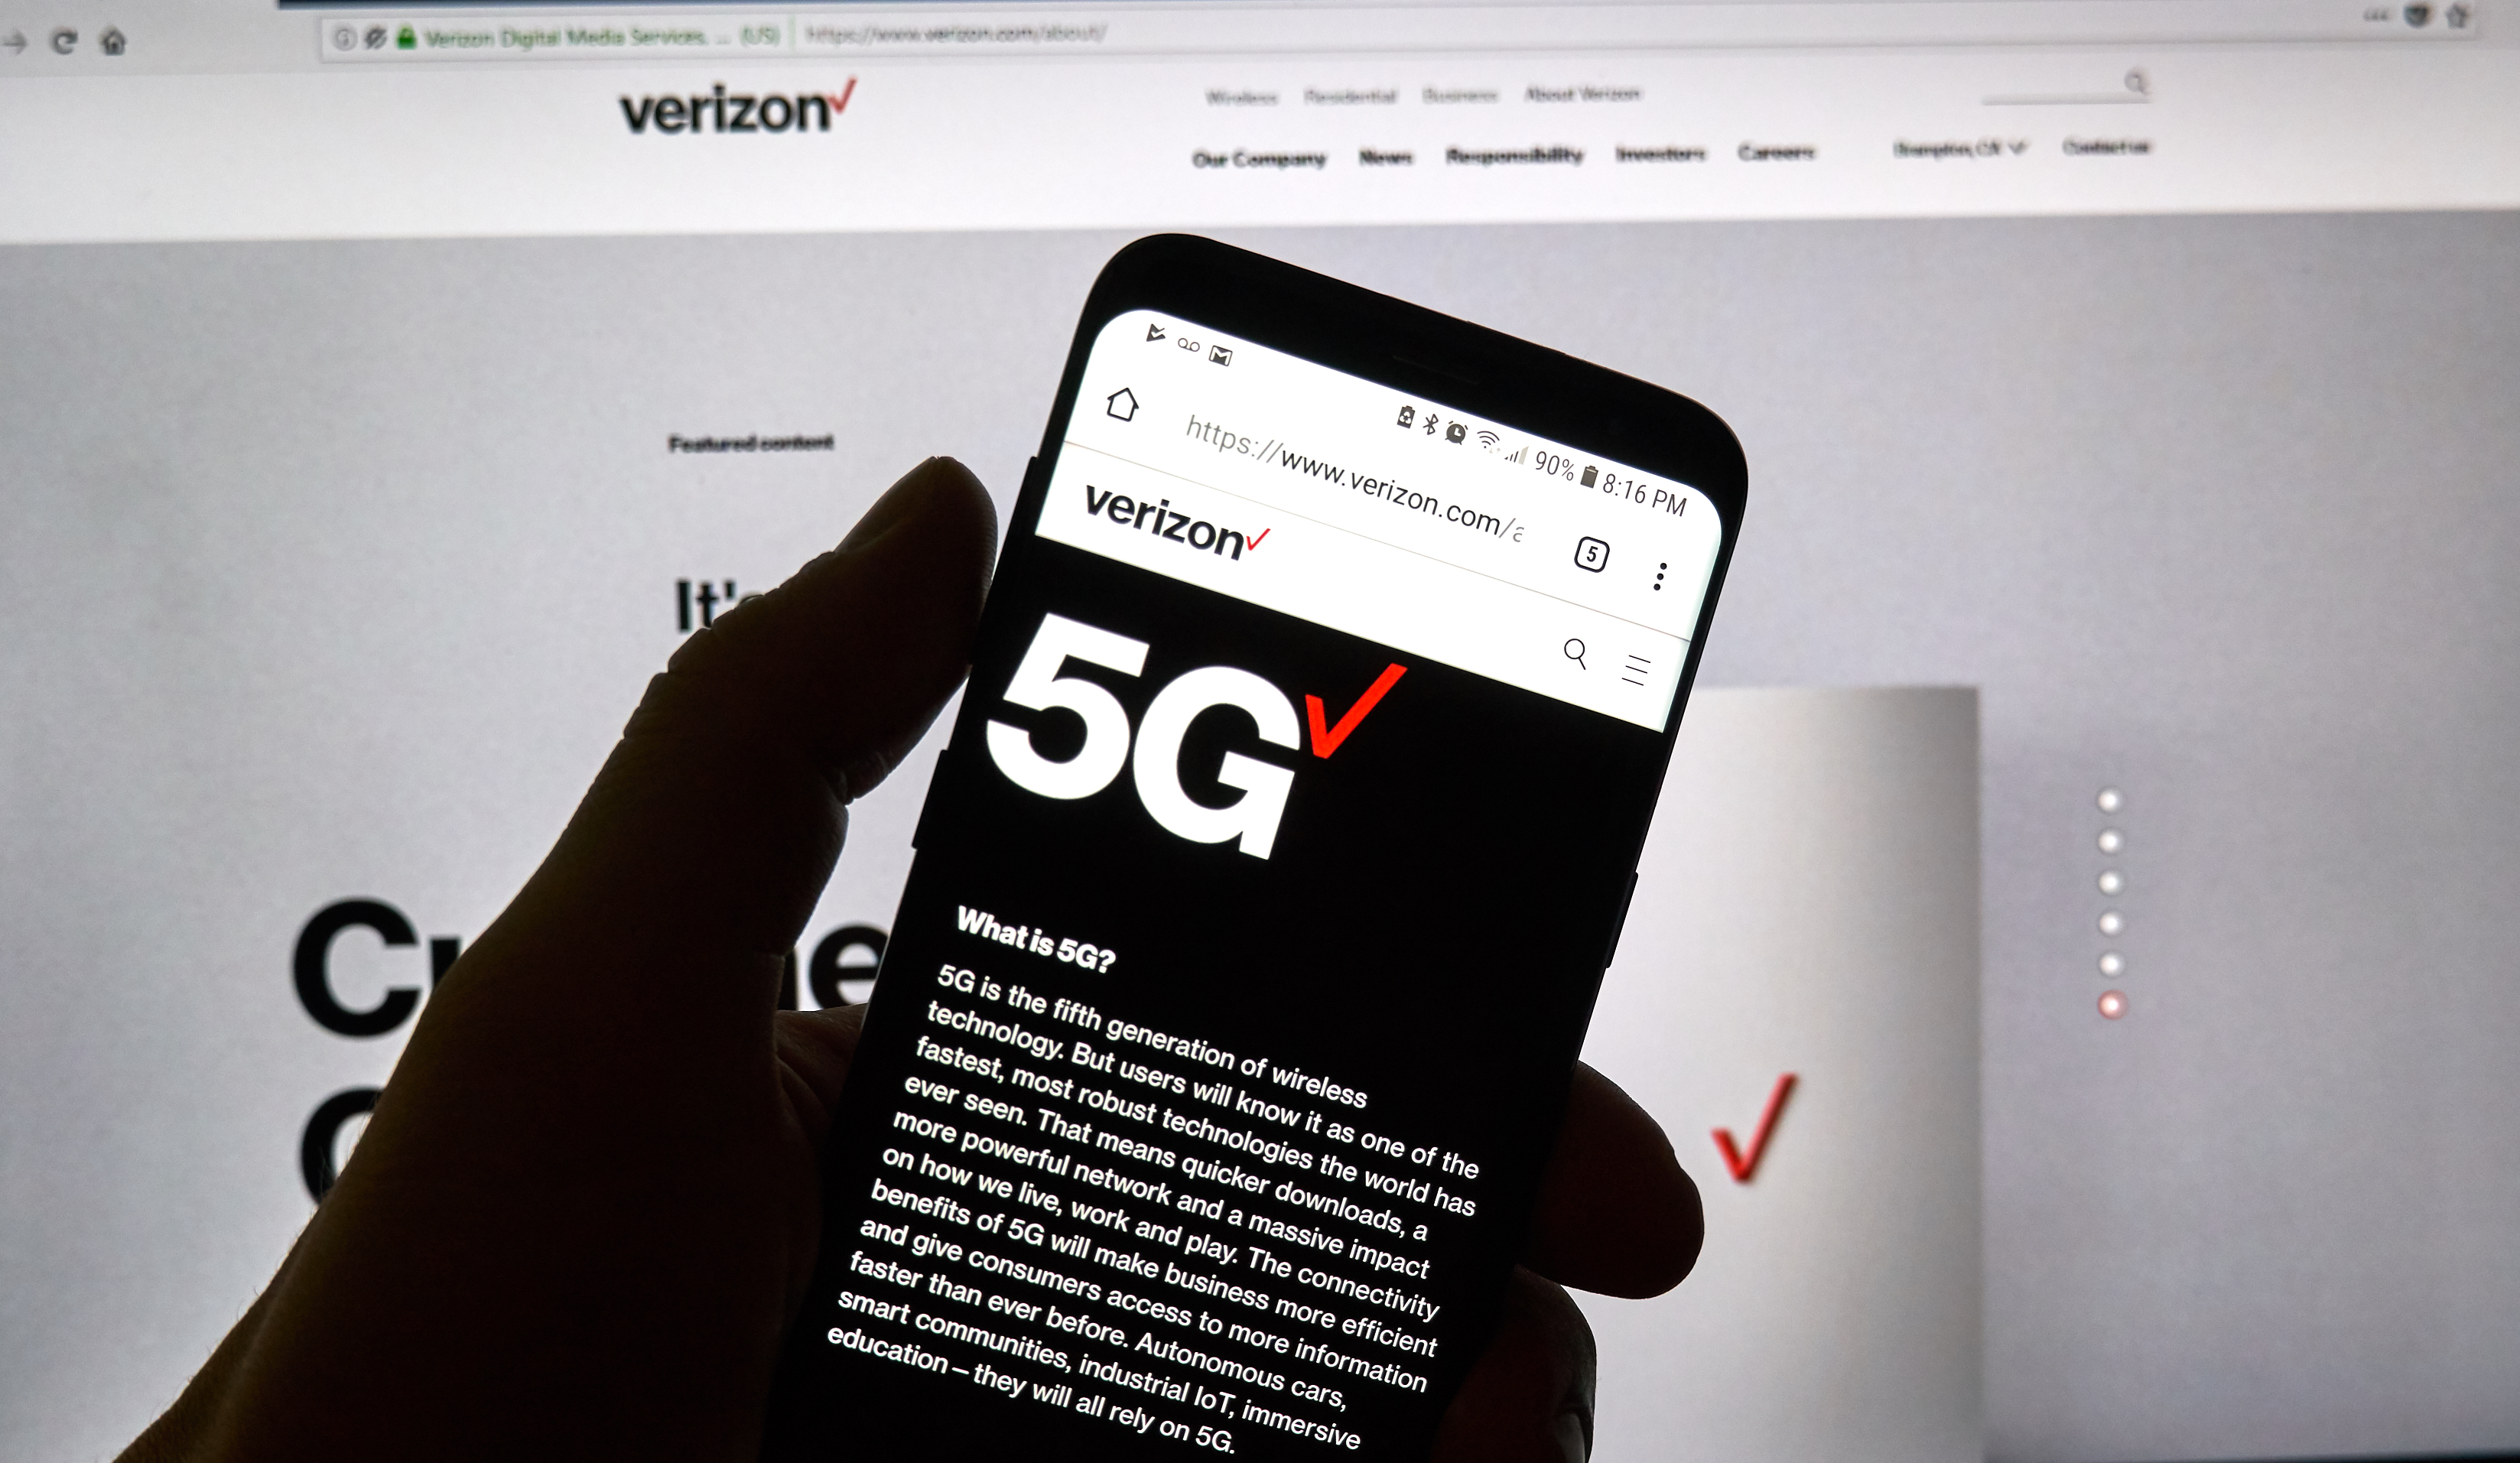 Verizon Turns on 5G Service in Select U.S. Cities